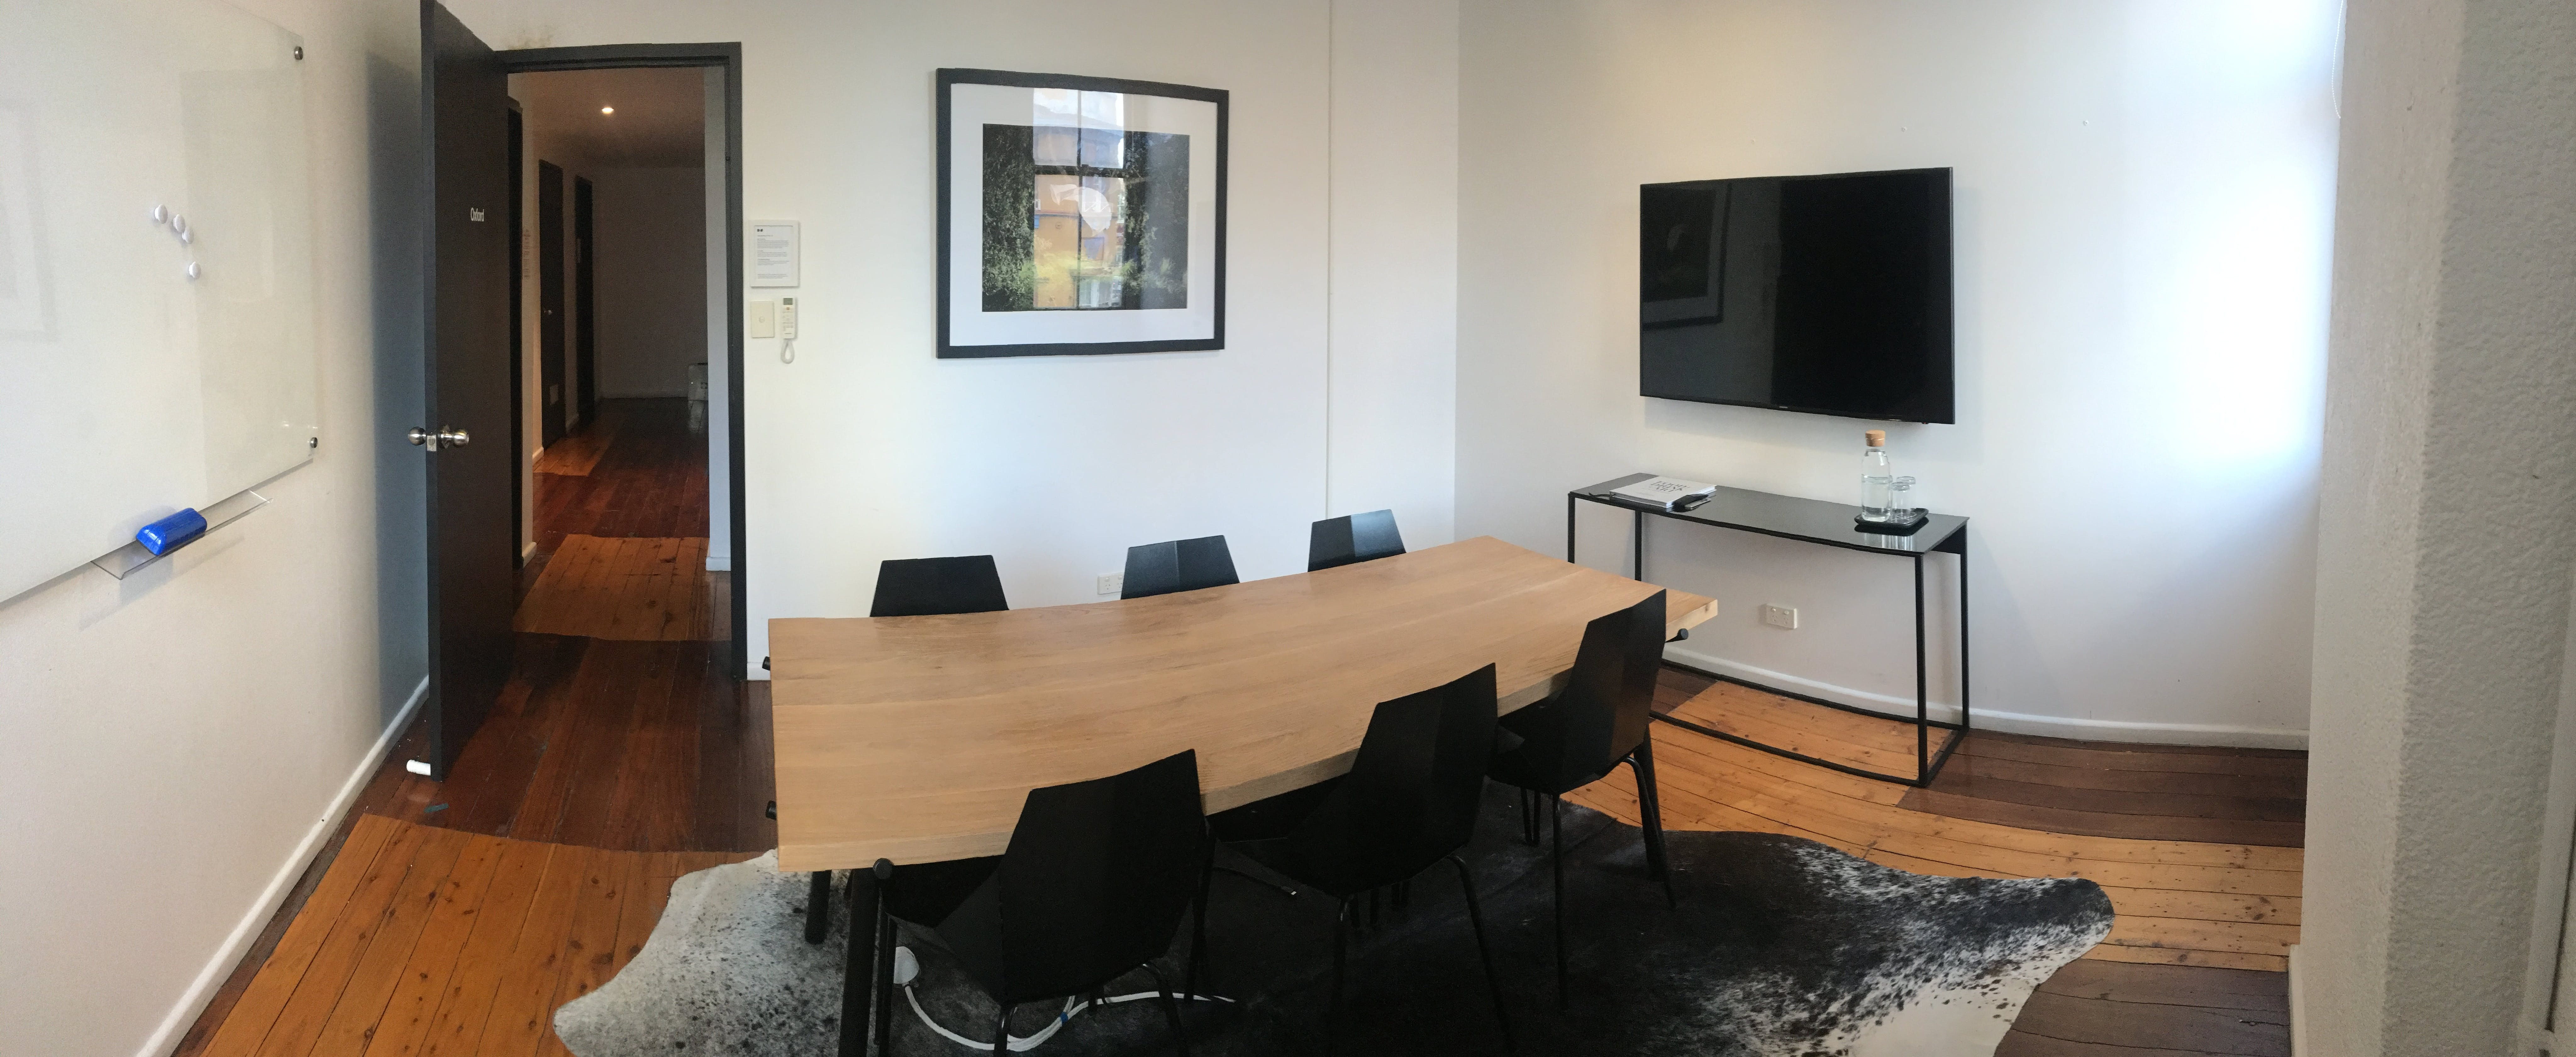 Oxford, meeting room at Desk Space, image 1